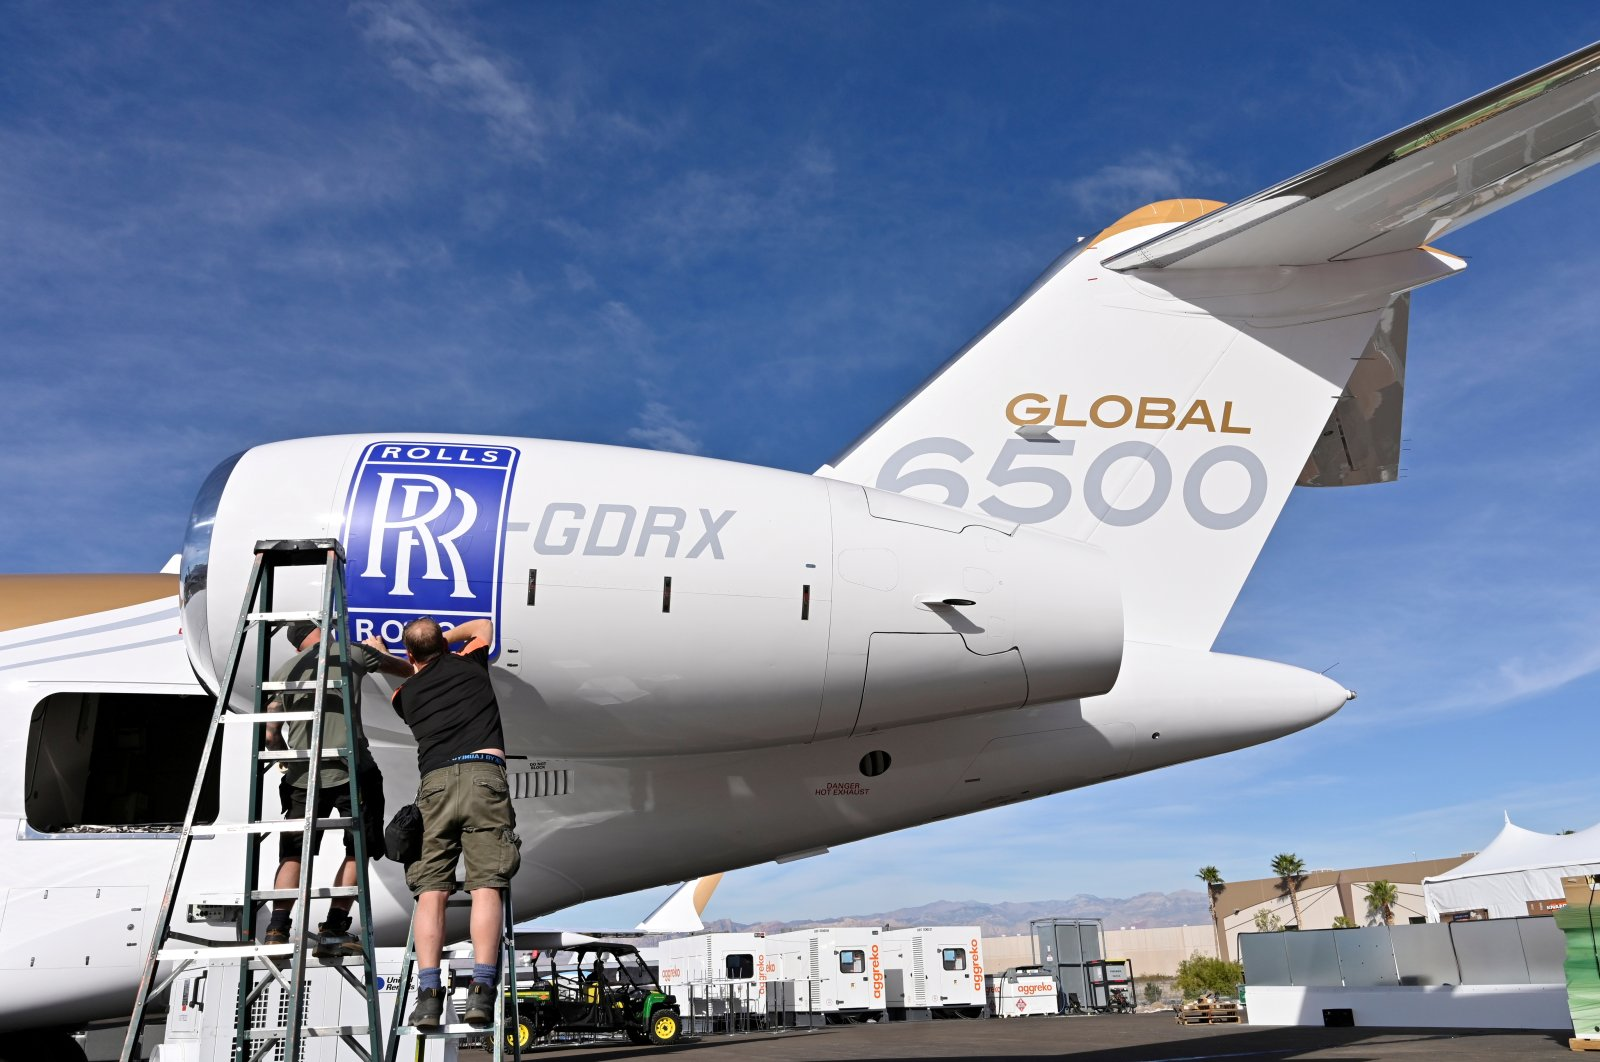 Workers apply a Rolls-Royce decal to the engine of a Bombardier Global 6500 business jet at the Bombardier booth at the National Business Aviation Association (NBAA) exhibition in Las Vegas, Nevada, U.S., Oct. 21, 2019. (Reuters)